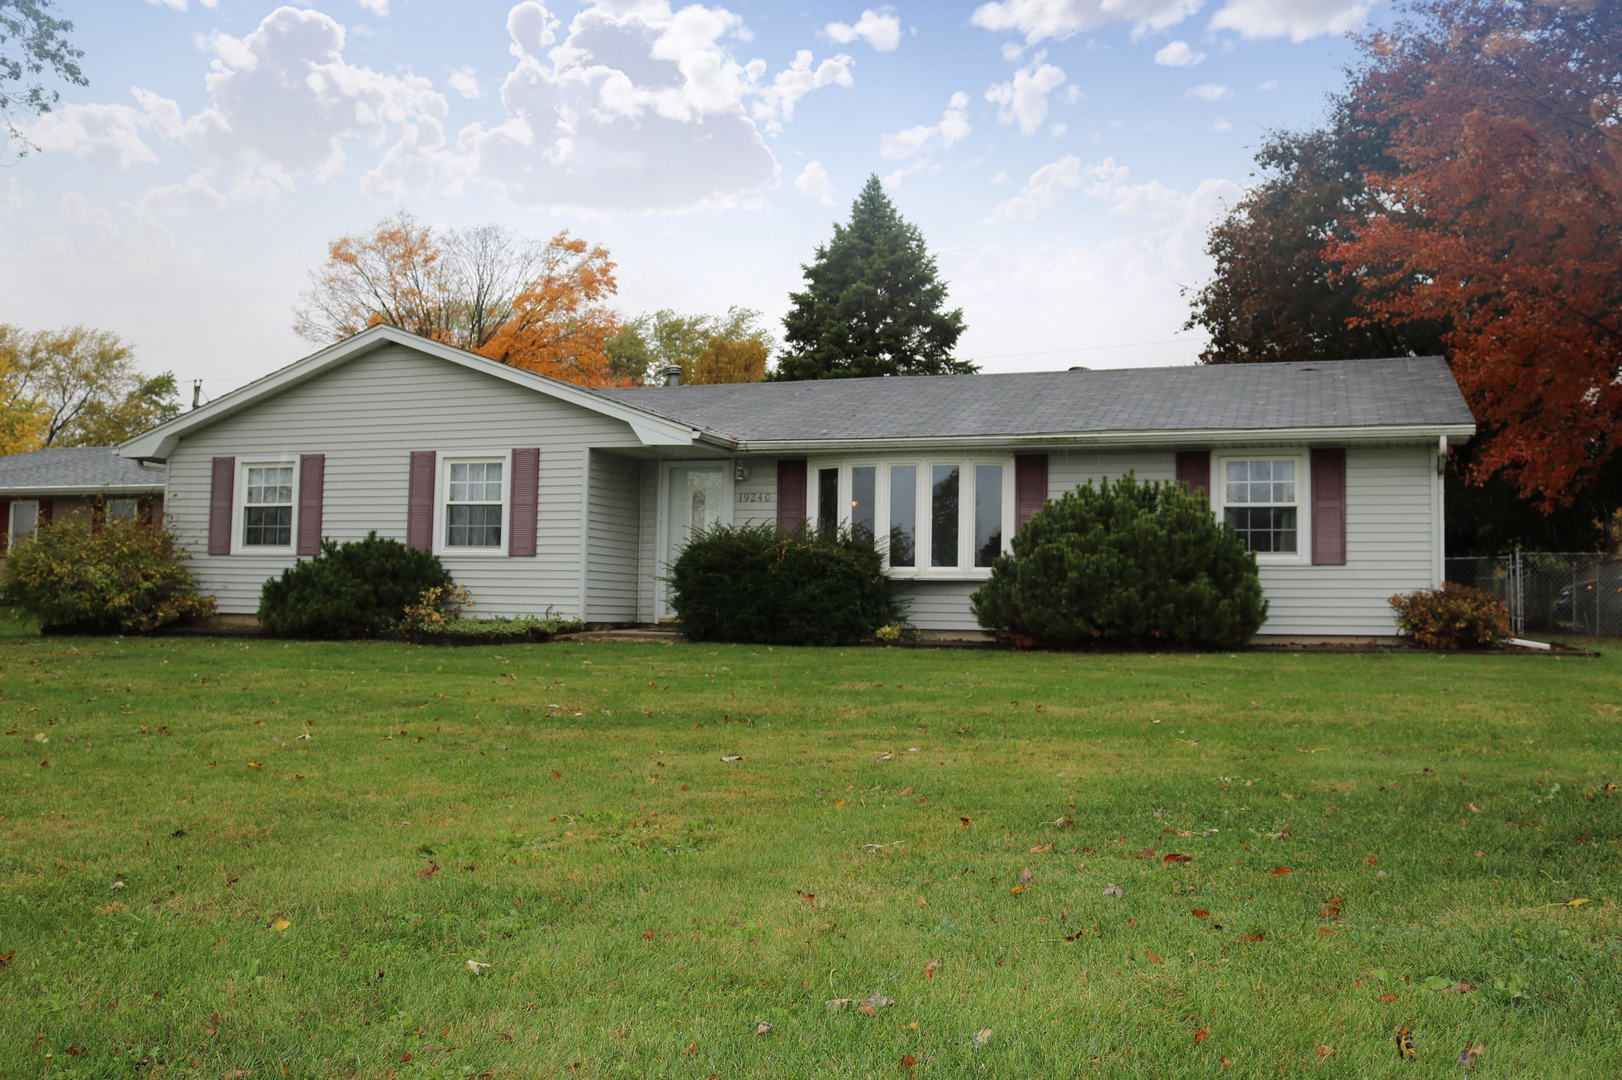 Photo of 19240 Airport Road, Romeoville, IL 60446 (MLS # 10917599)